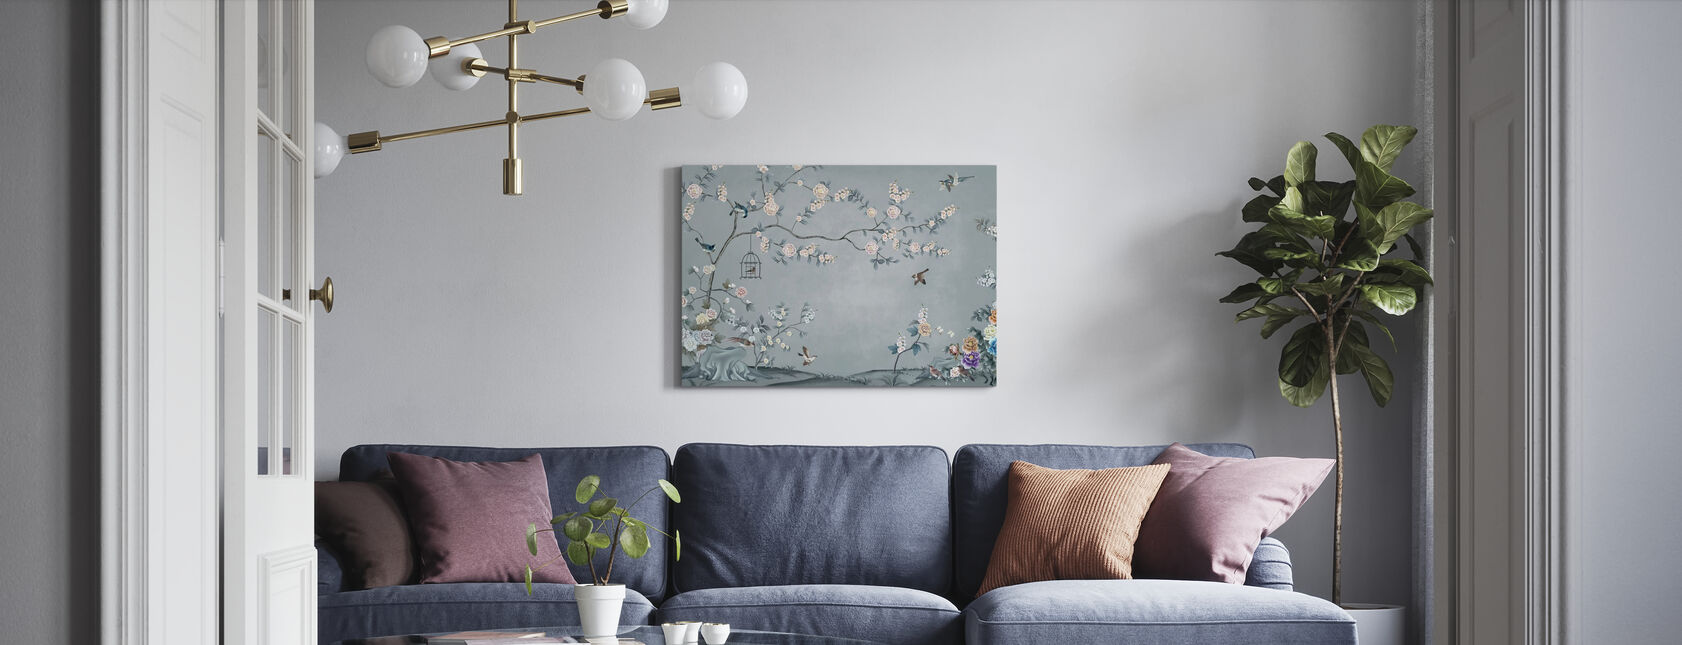 Birds Eden - Canvas print - Living Room